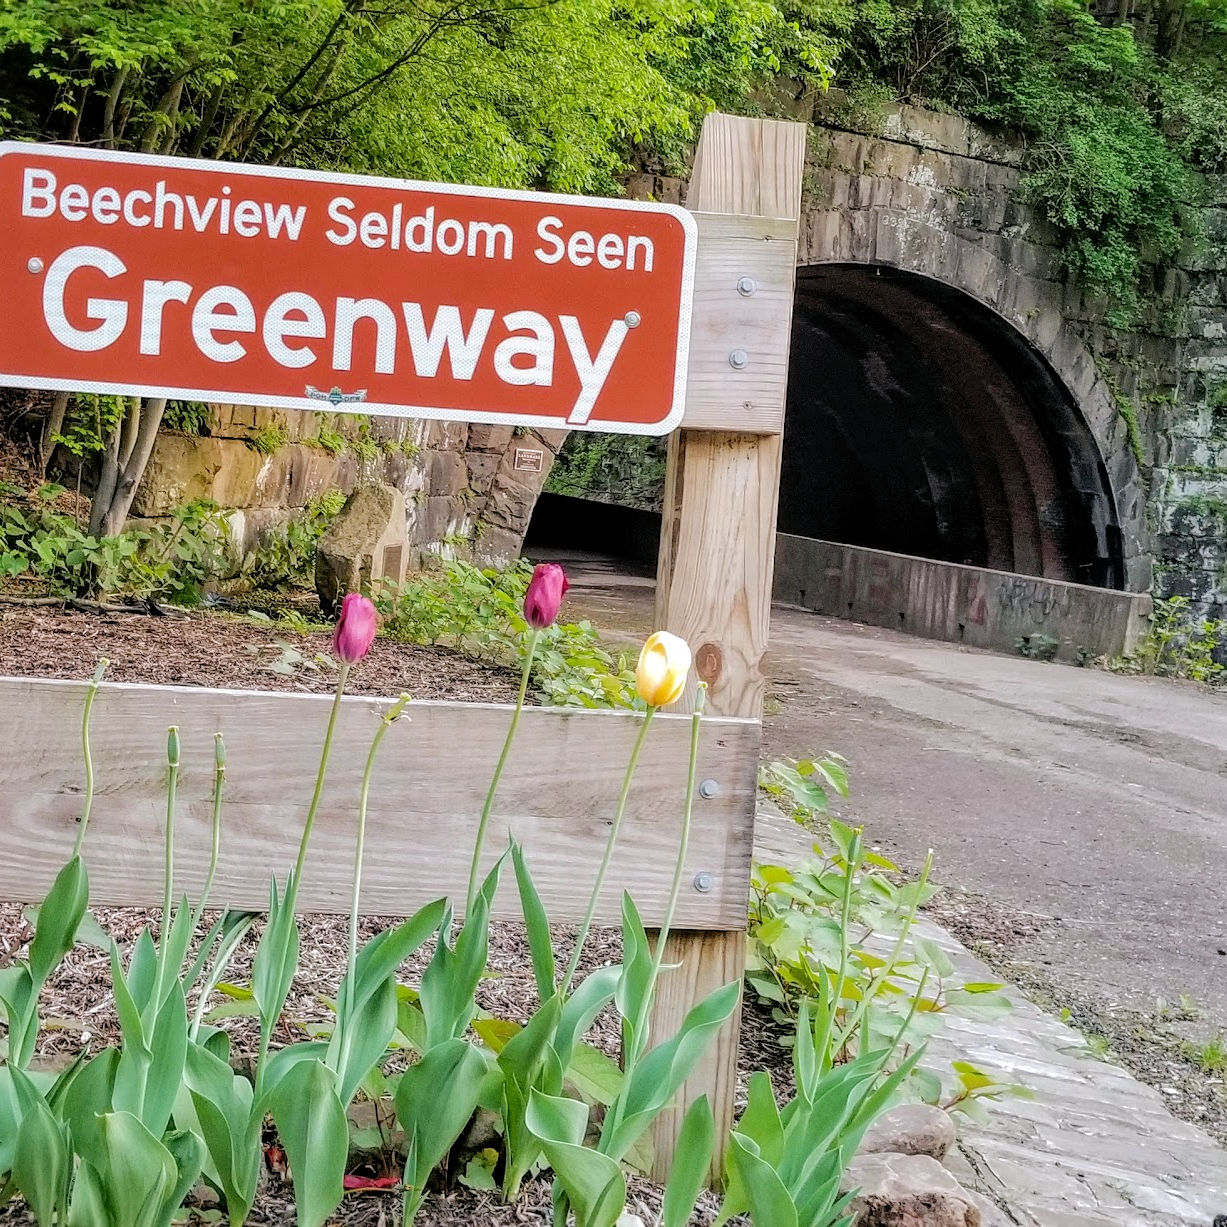 A fence with a sign for Seldom Seen Greenway in front of a historic stone tunnel and surrounded by tulips in bloom.